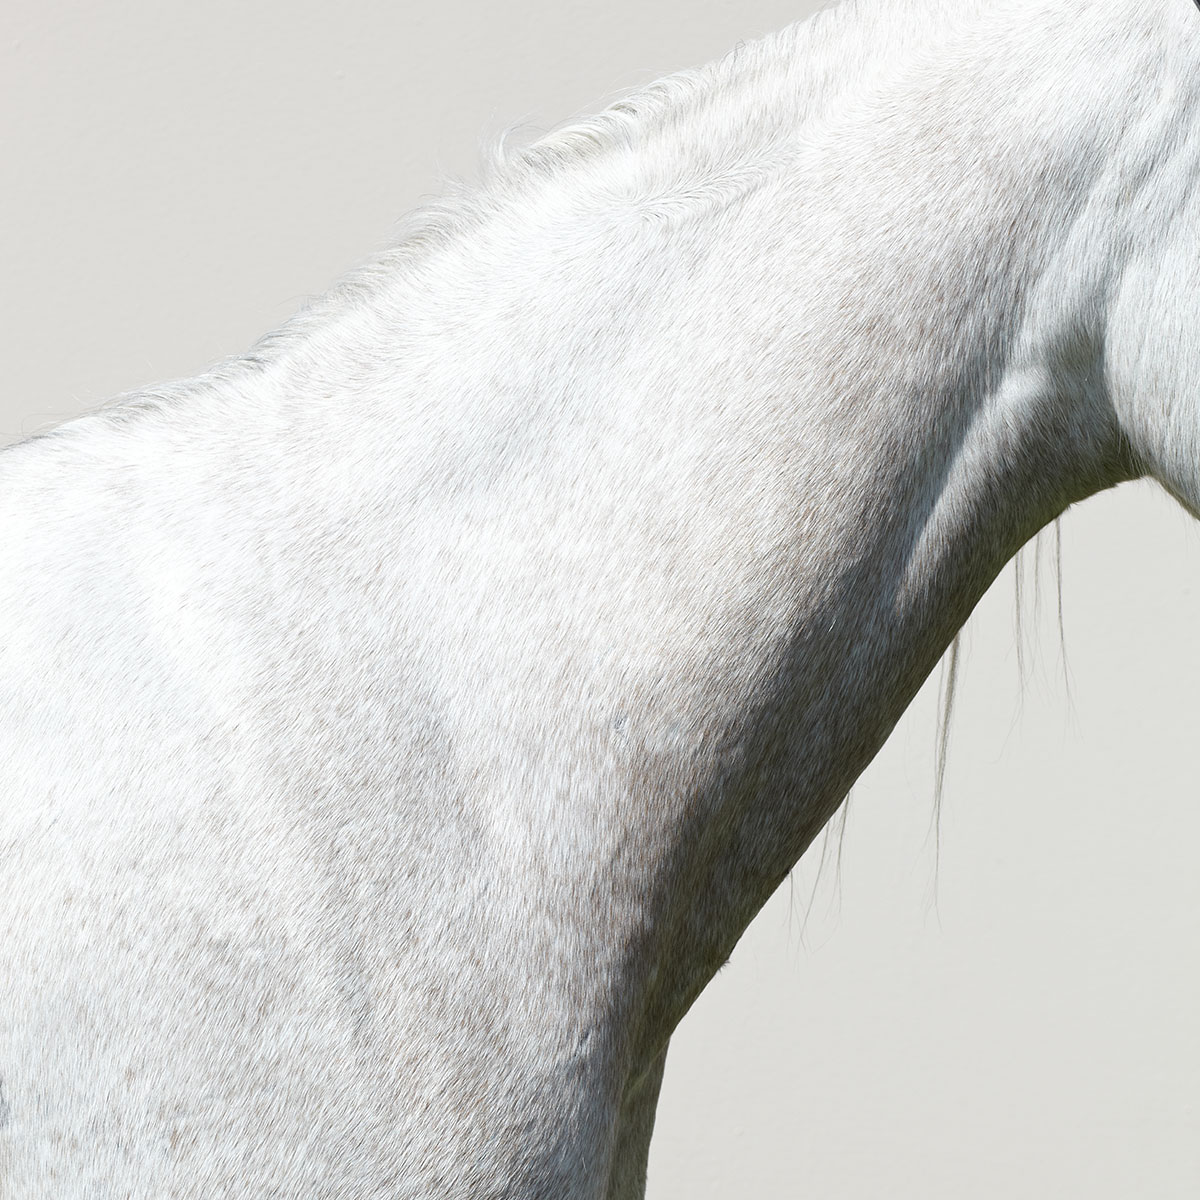 decorative photo with horse